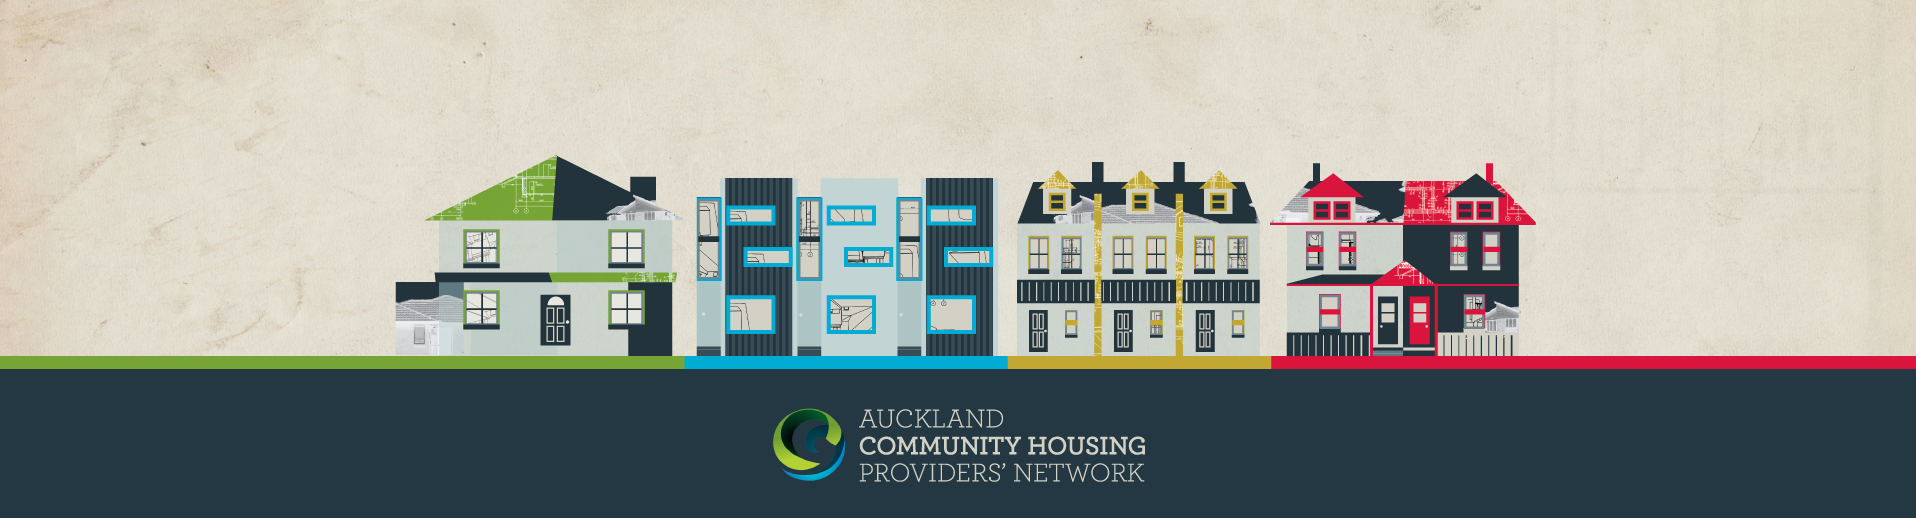 auckland community housing provider u0027s network